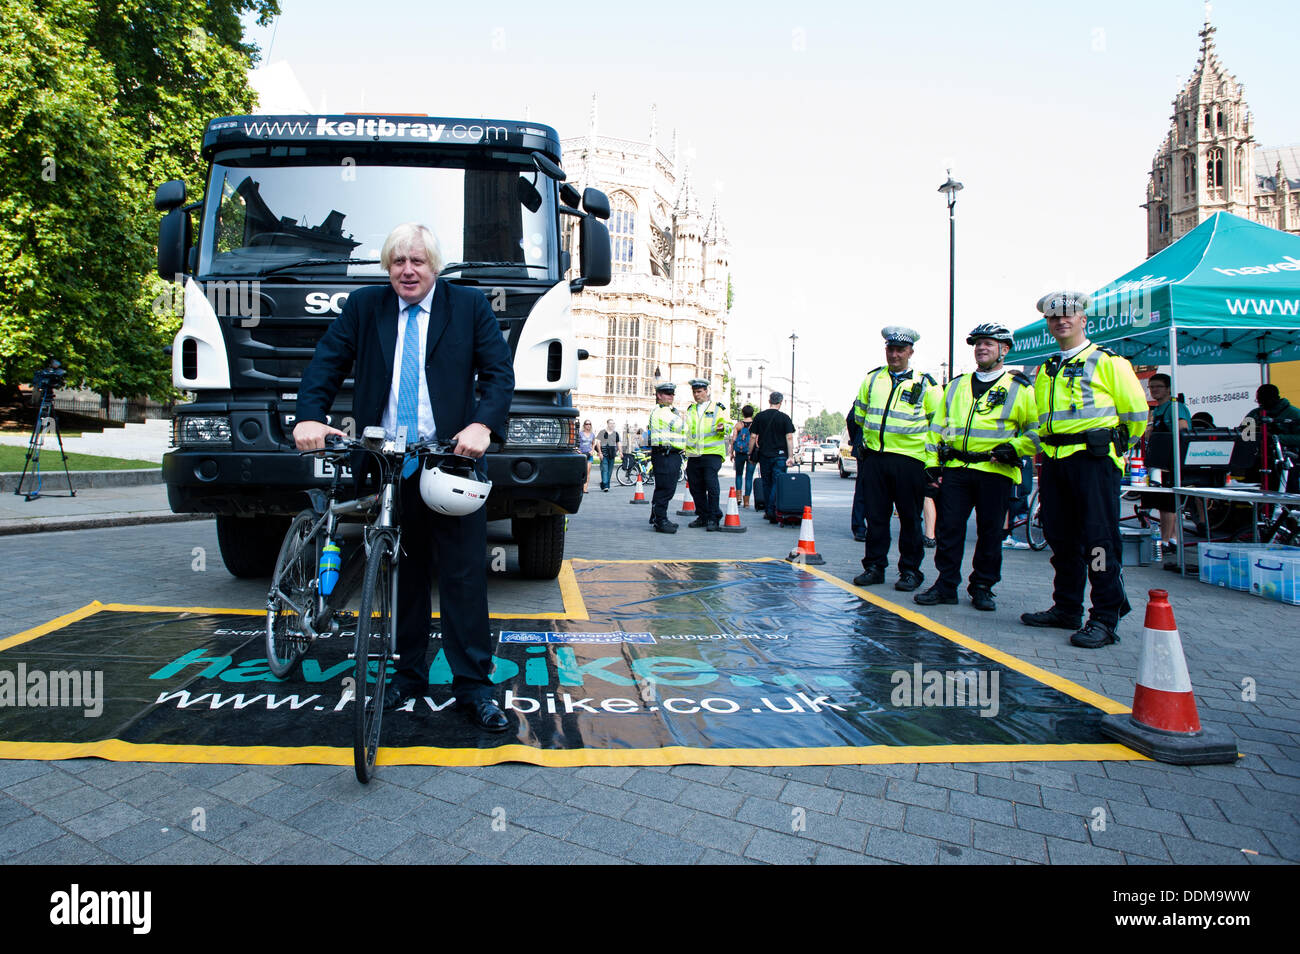 London, UK - 4 September 2013: Mayor of London Boris Johnson poses for a picture next to a Heavy Goods Vehicle (HGV) during the Metropolitan Police 'Exchanging Places' event, organised to raise awareness of the safety issues faced by lorry drivers and cyclists. Credit:  Piero Cruciatti/Alamy Live News - Stock Image